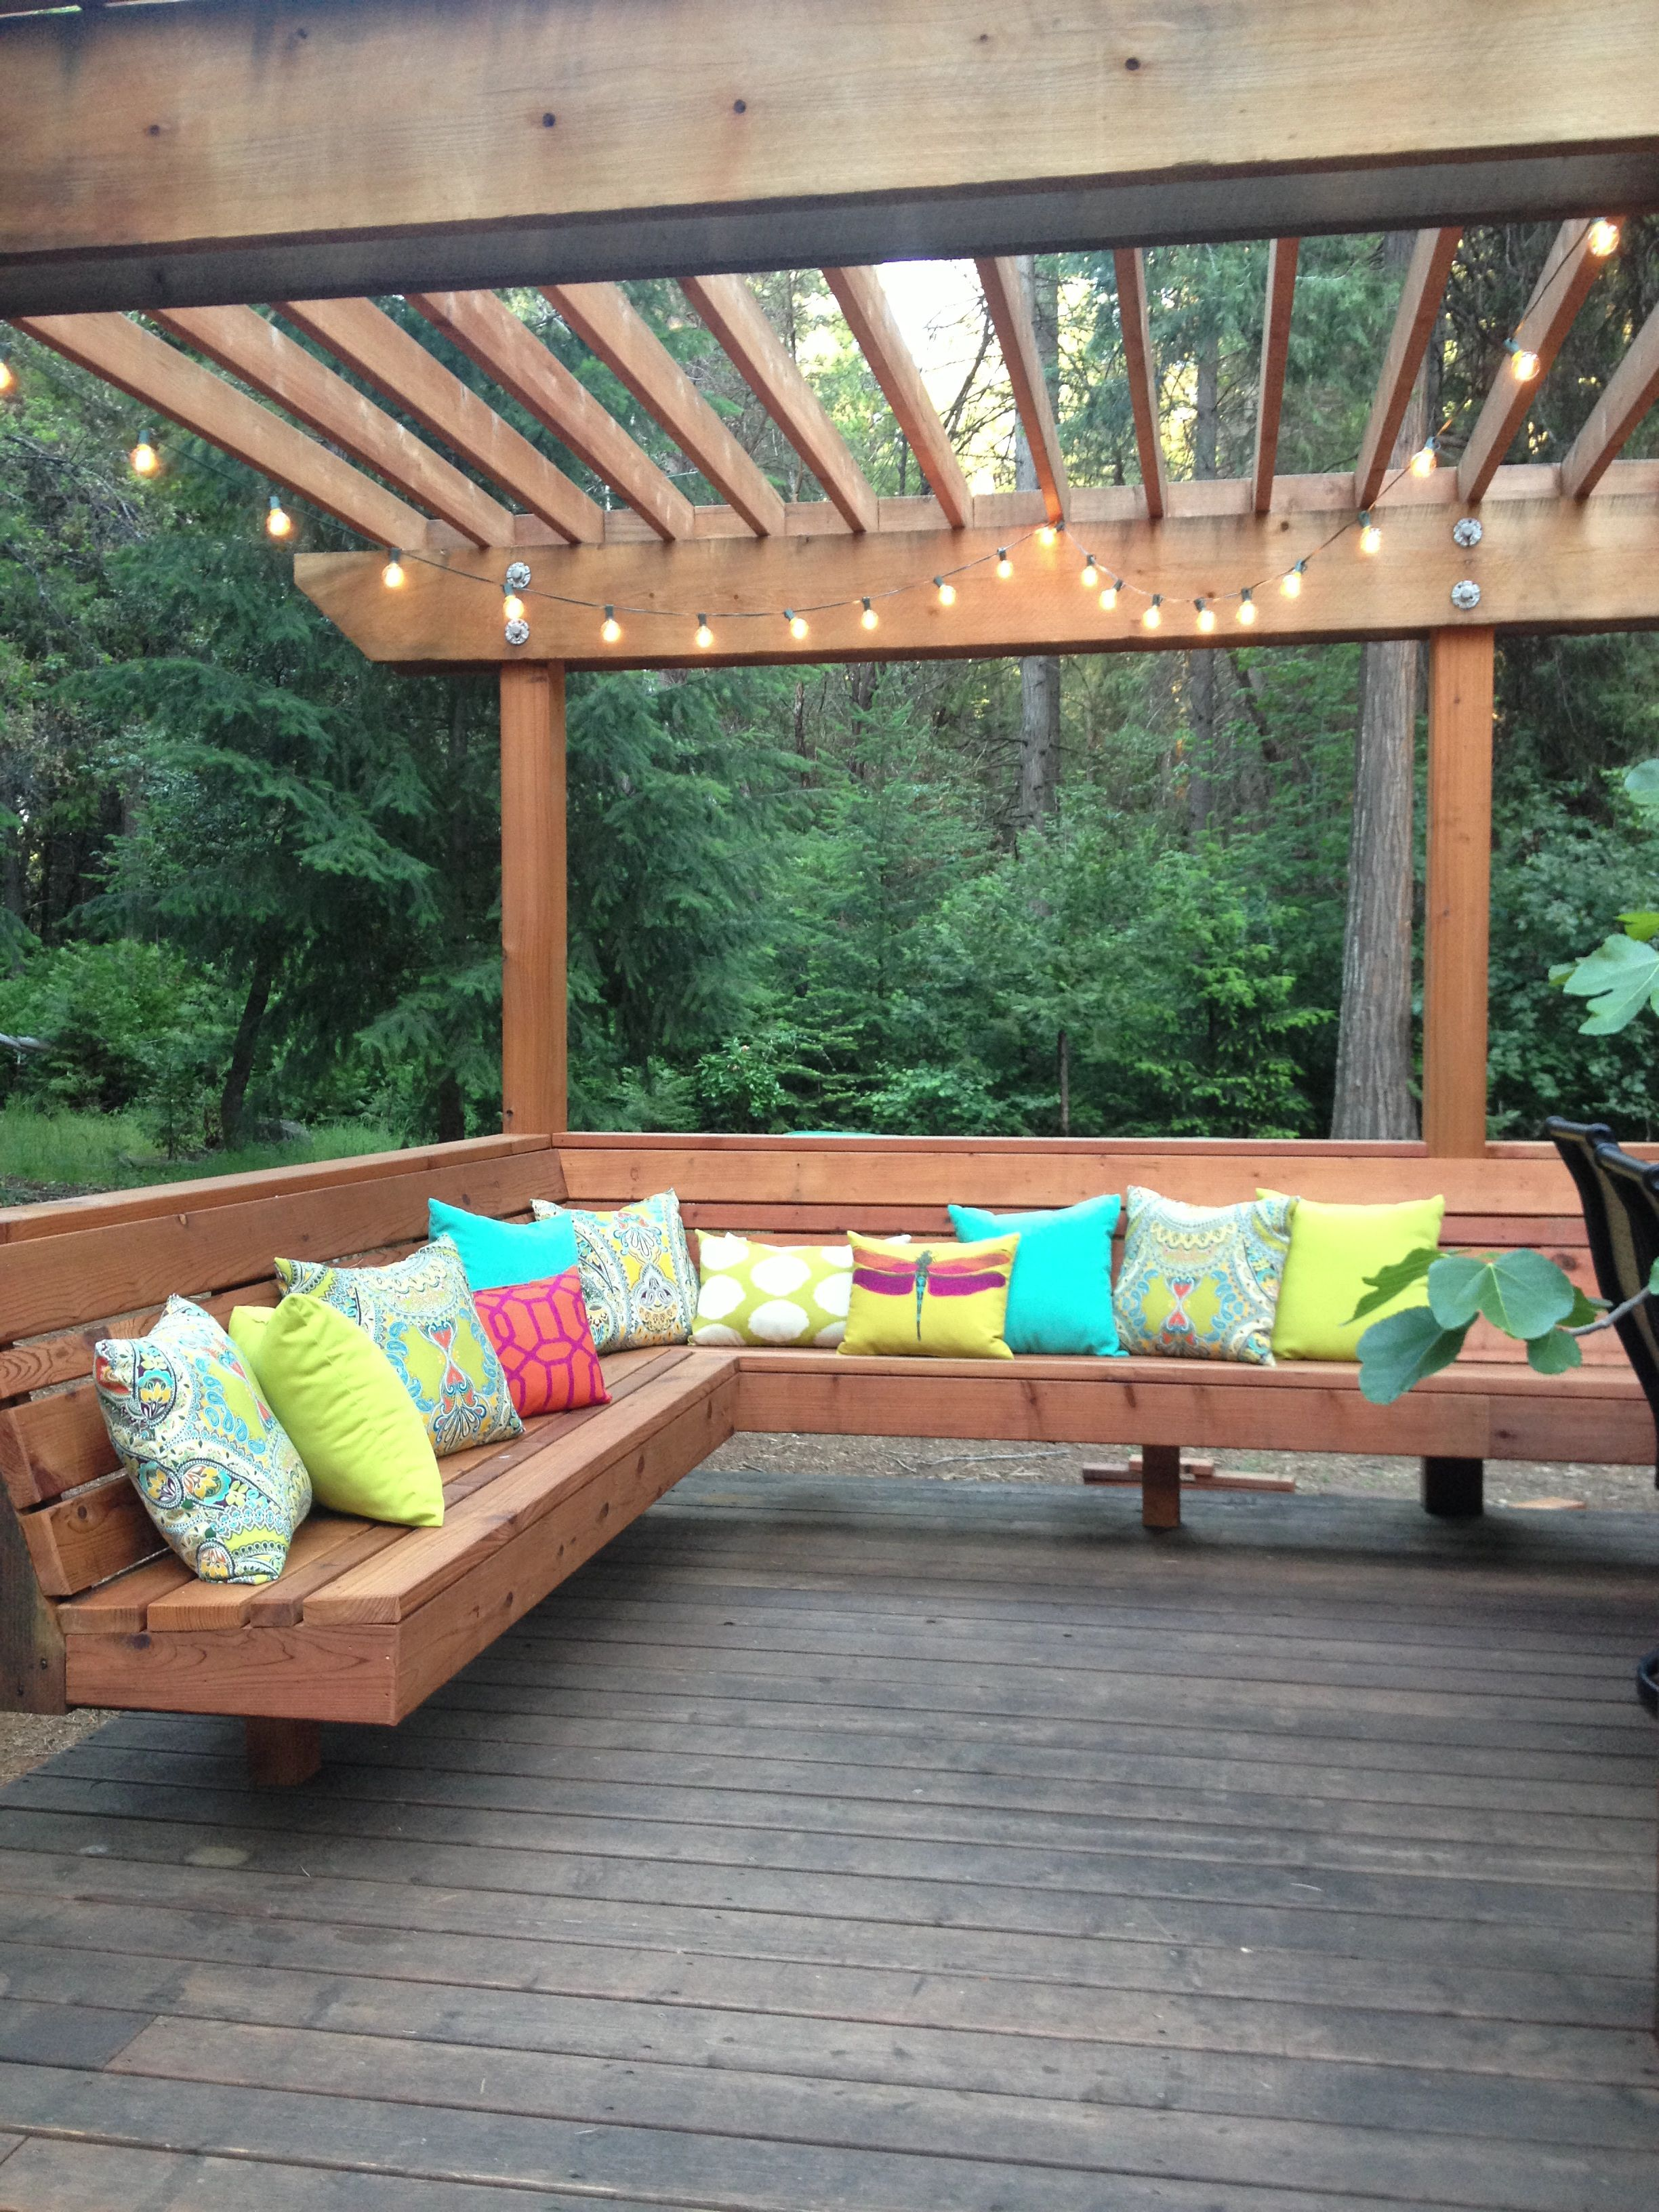 Deck Is Complete Love The Built In Benches Great For